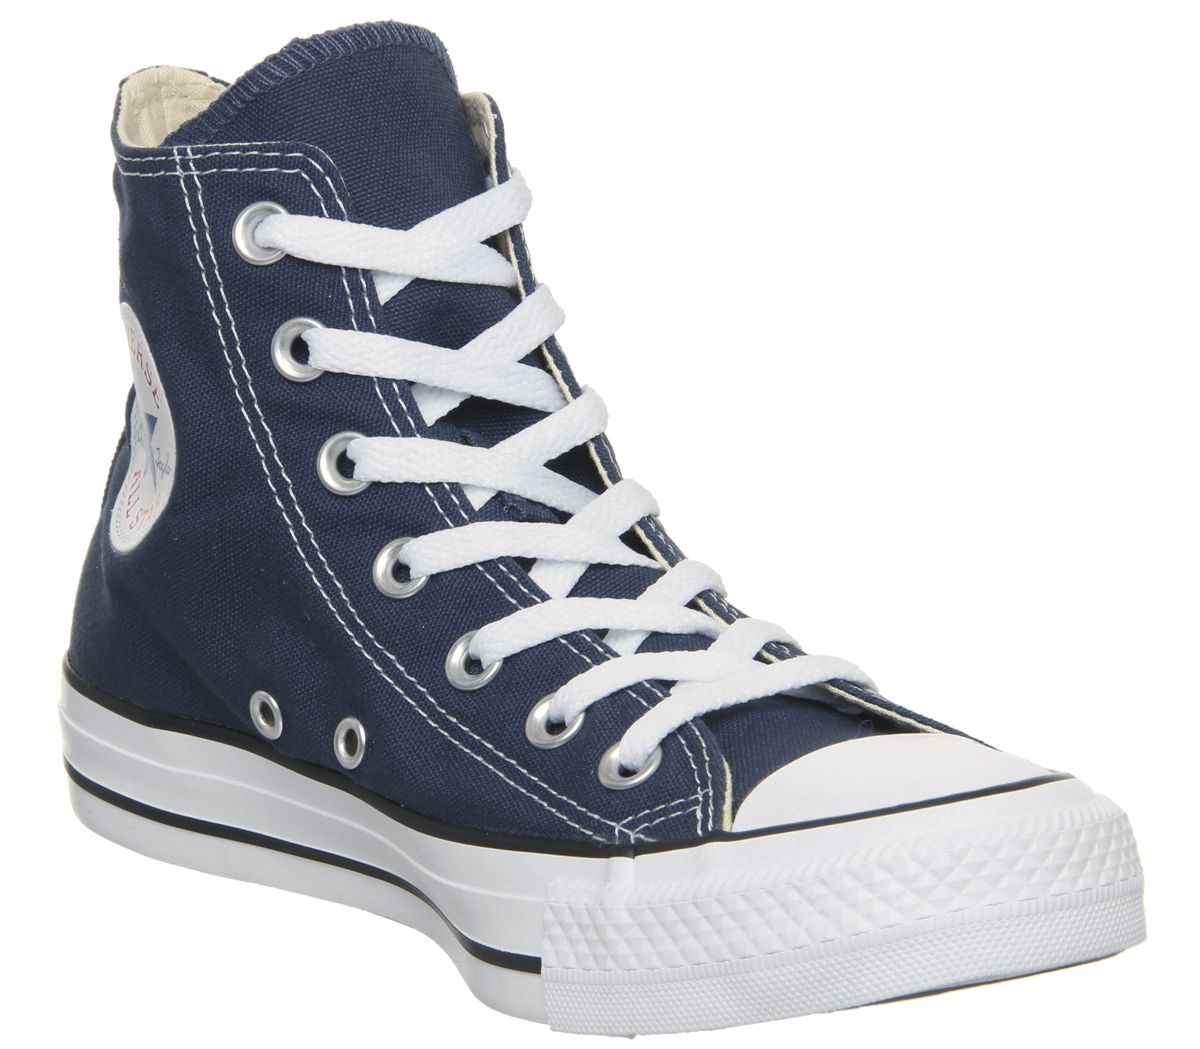 0a5ef729e3a6 Converse All Star Hi Navy Canvas - Unisex Sports